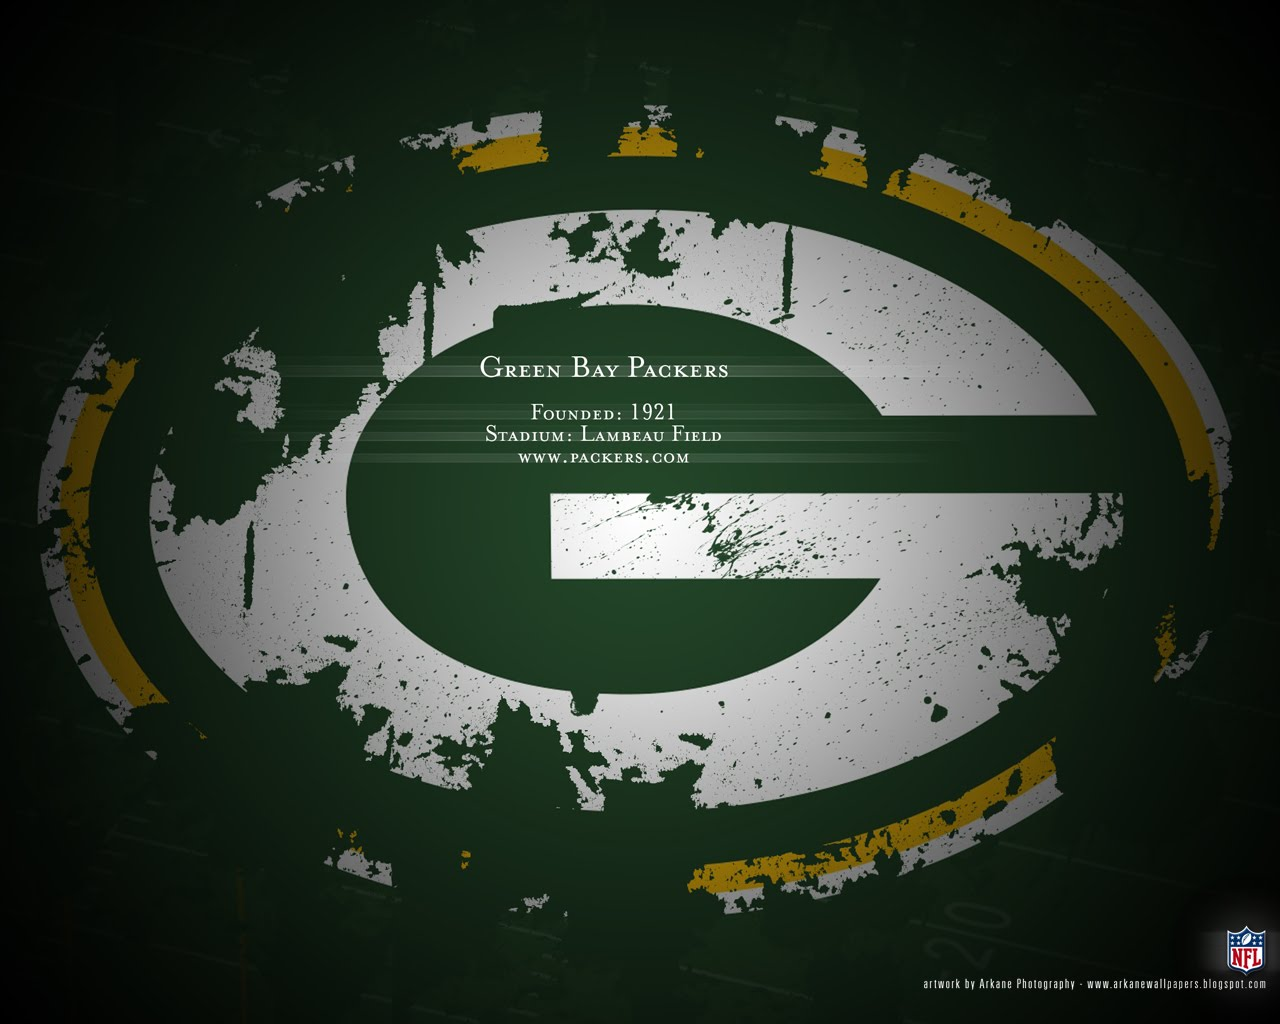 arkane nfl wallpapers profile green bay packers